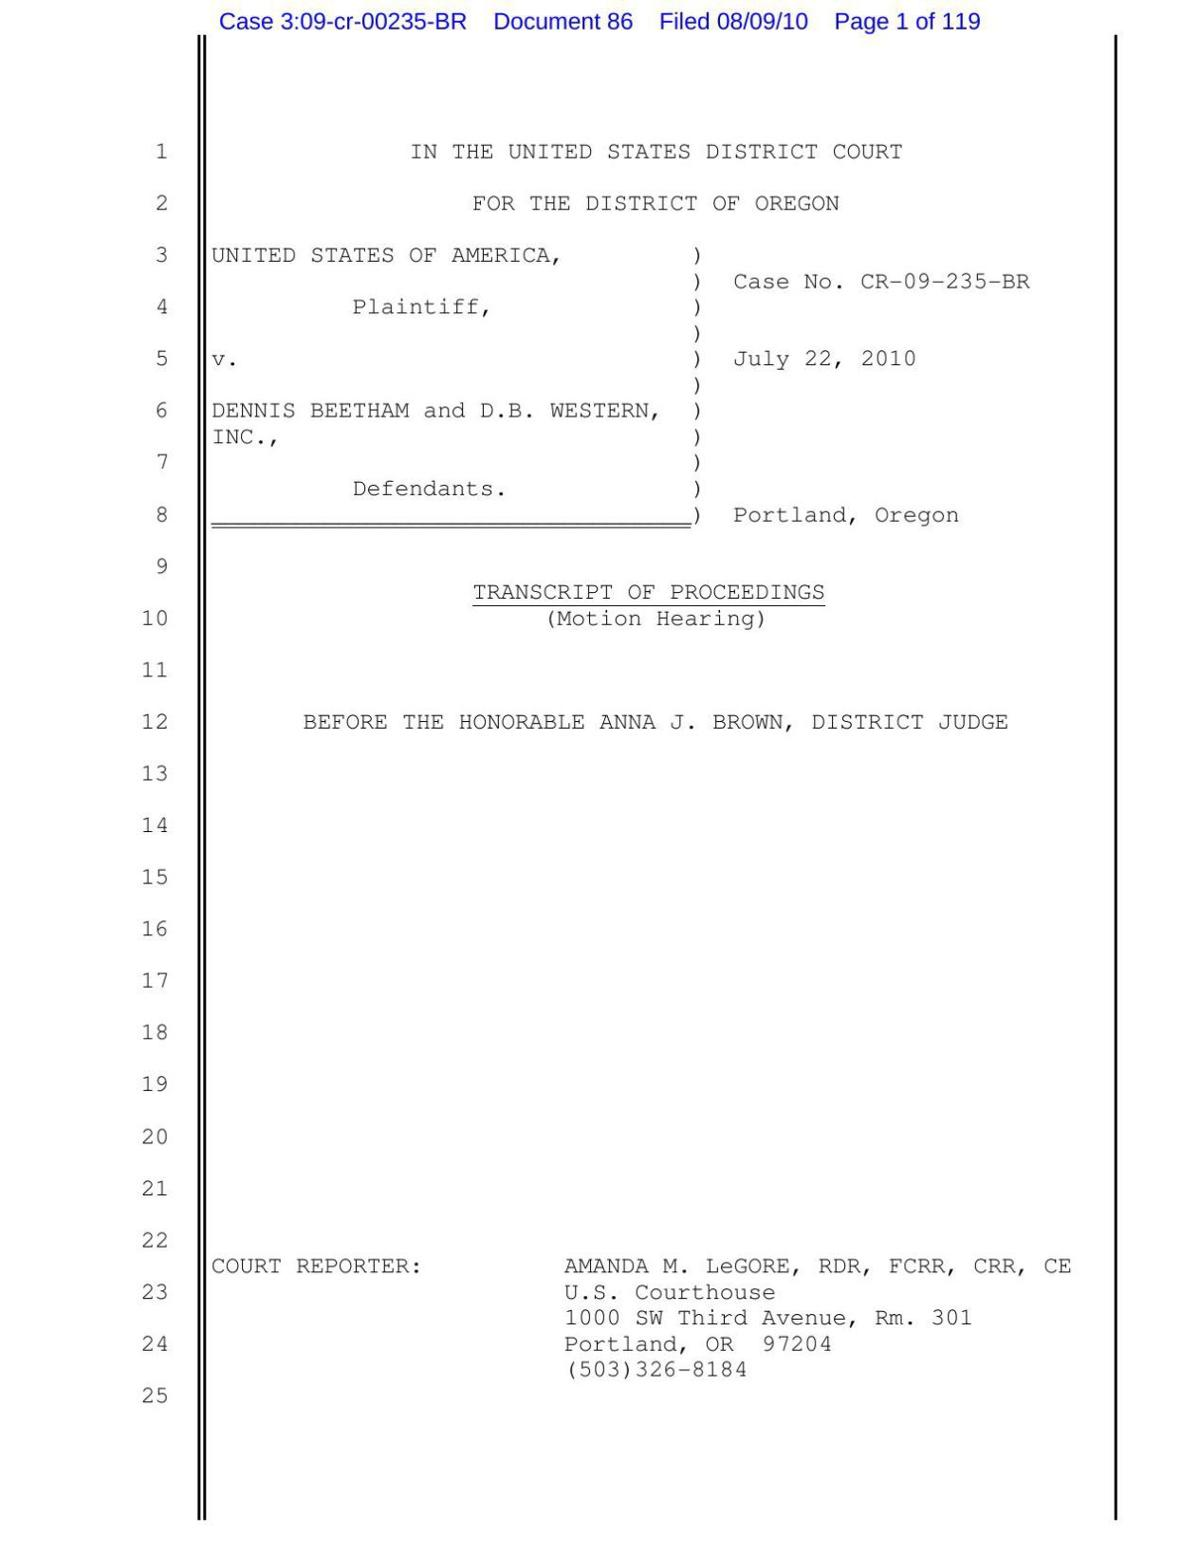 July 22, 2010 federal hearing transcript